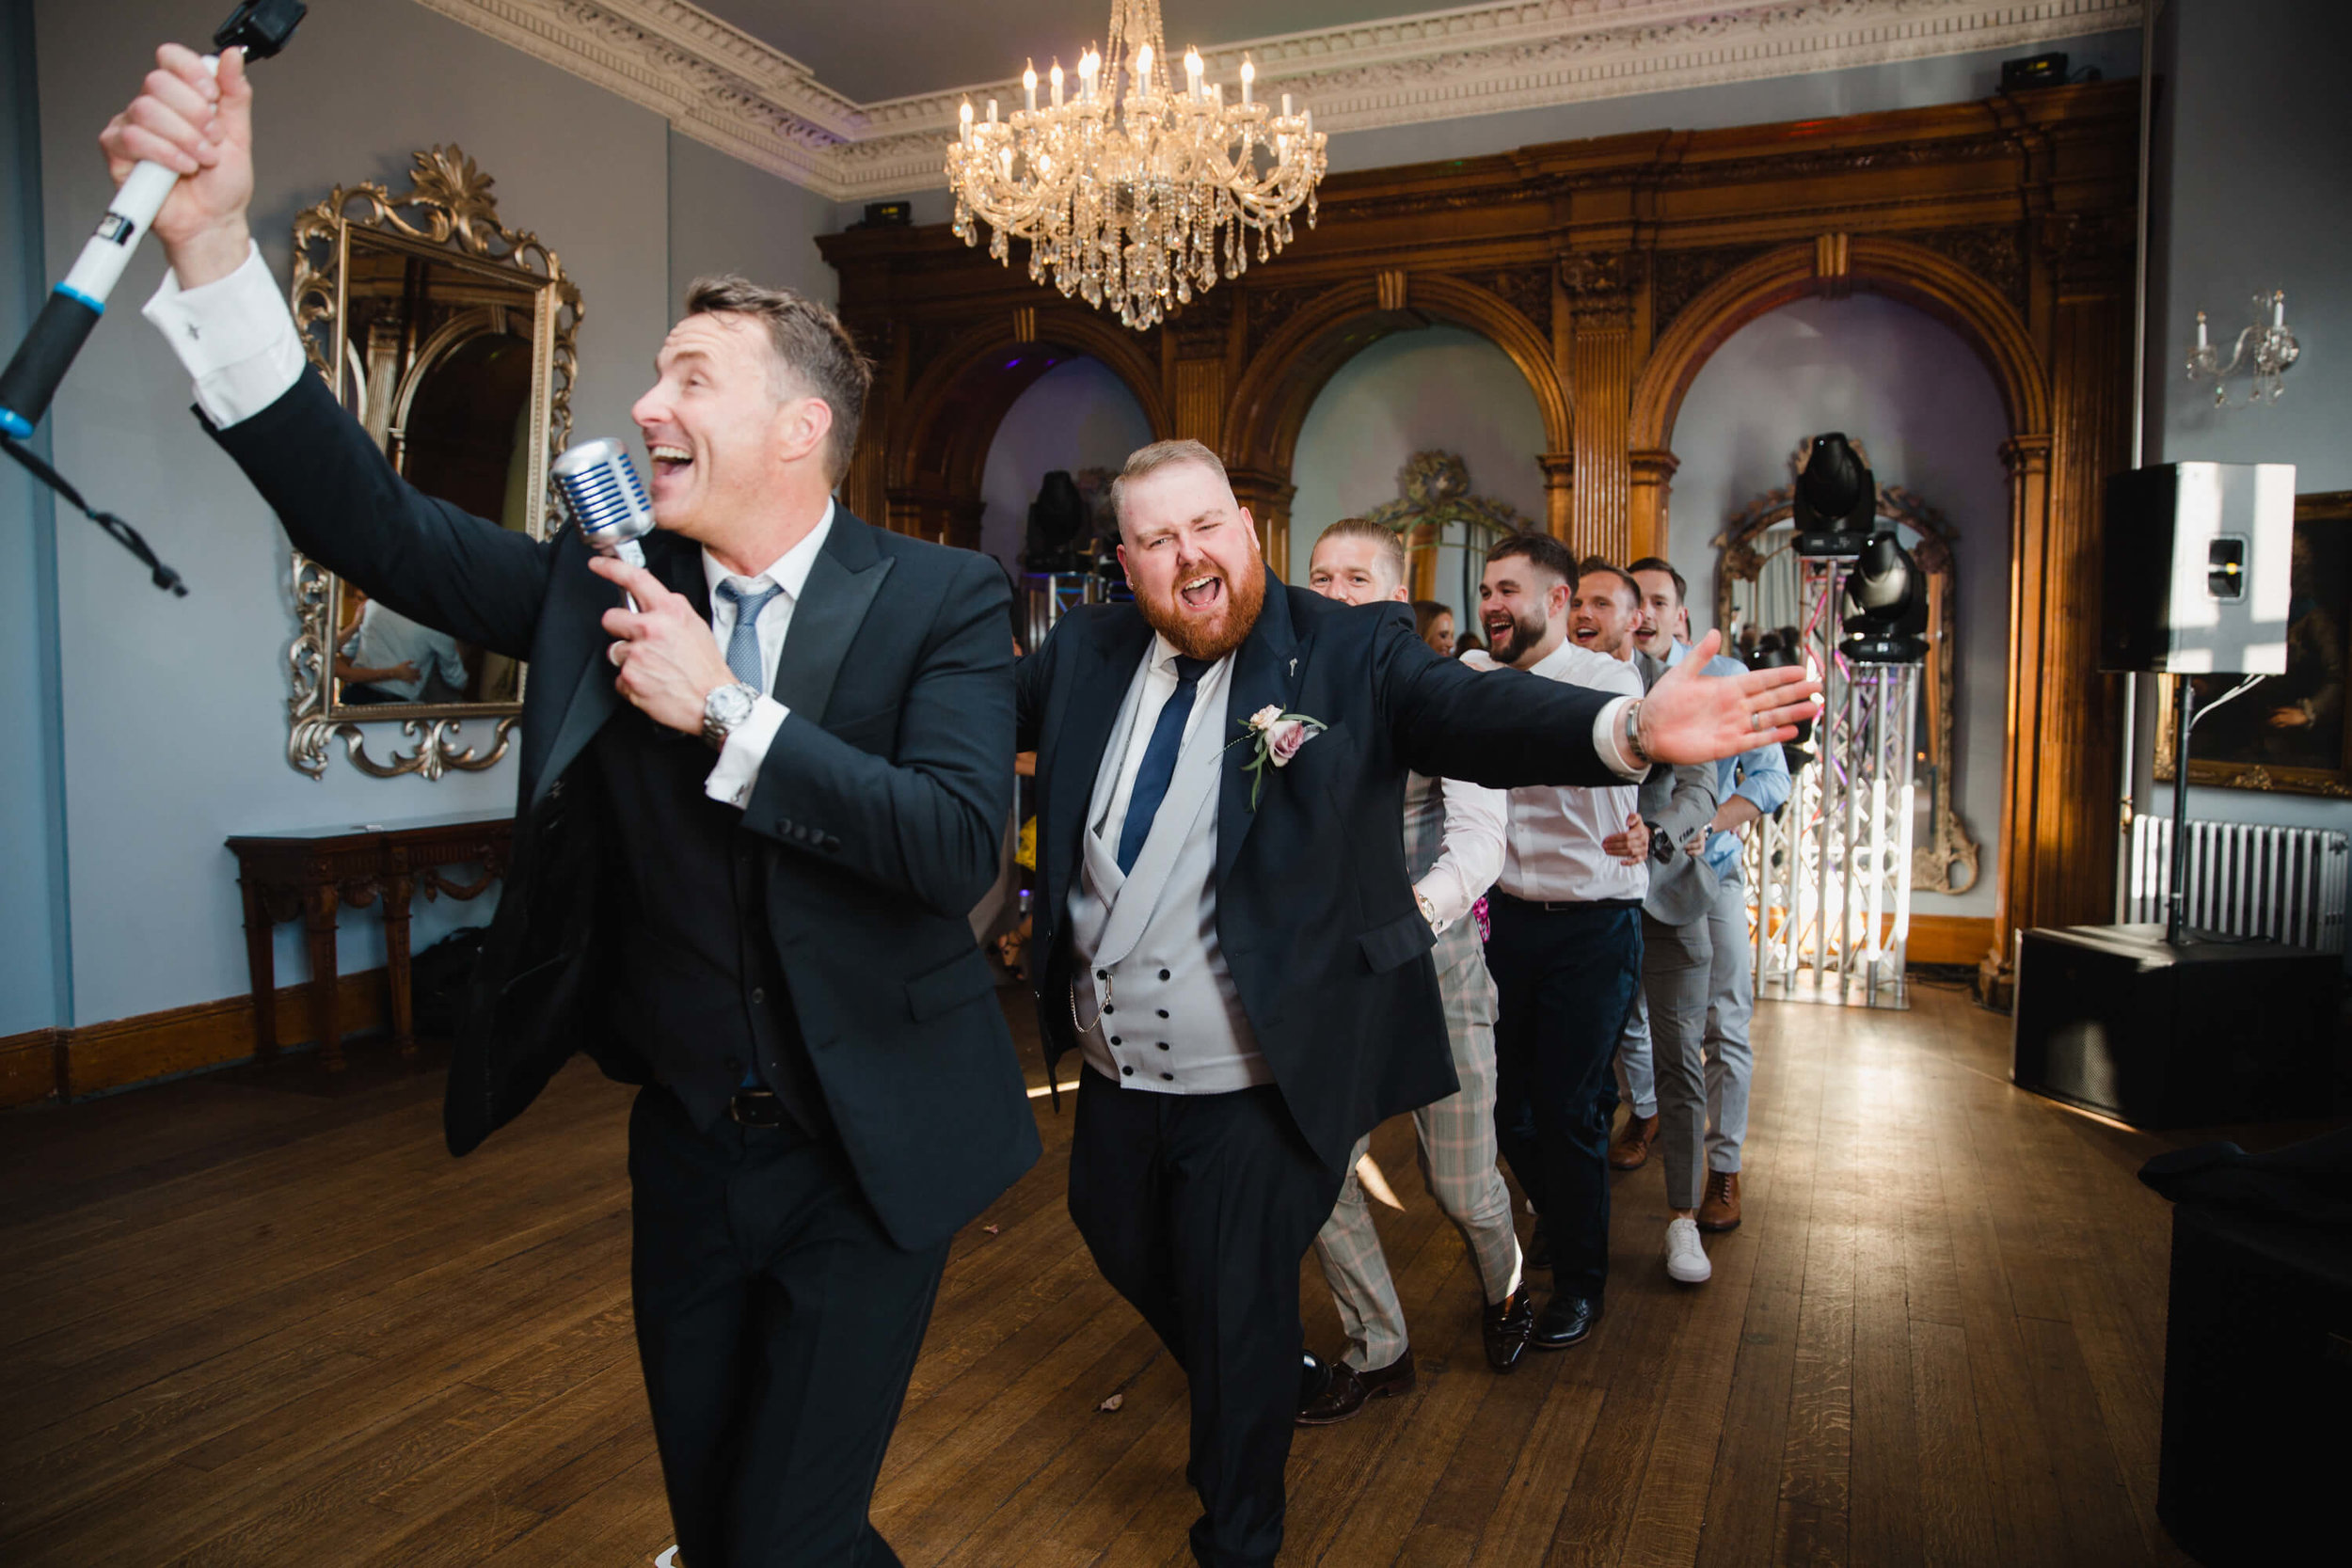 Haigh_Hall_Wedding_Photography_066.jpg